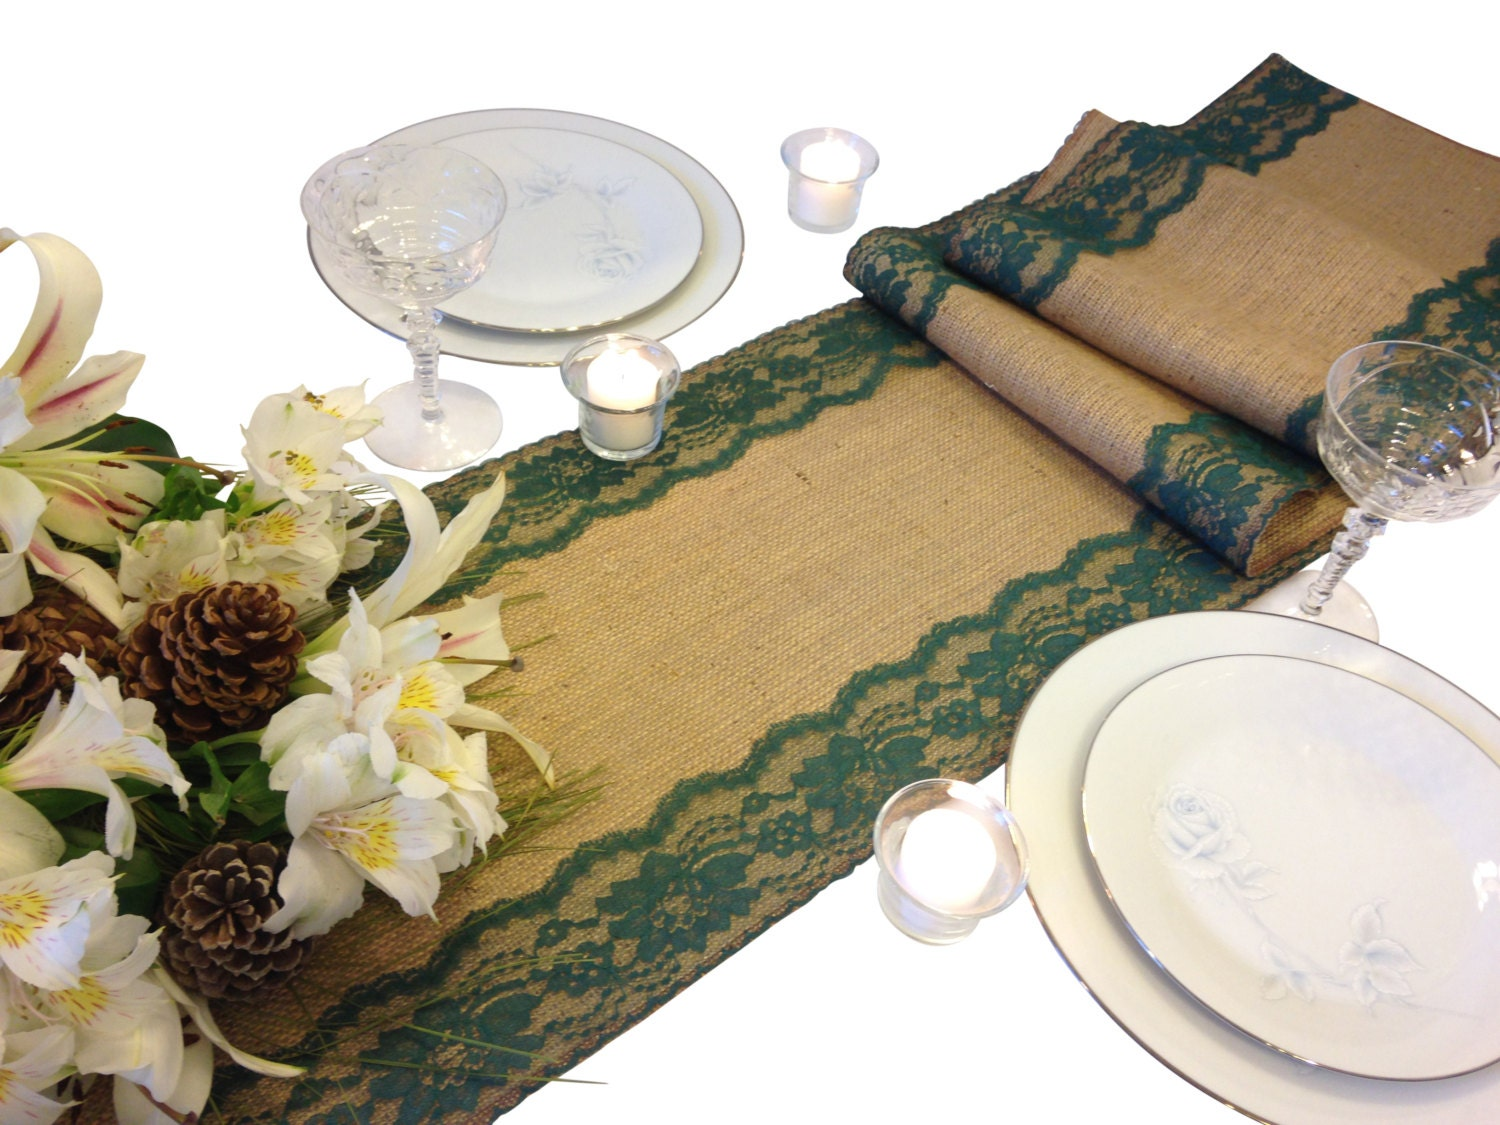 Burlap lace table runner dark green lace 16 30 ft 12 for 12 ft table runner